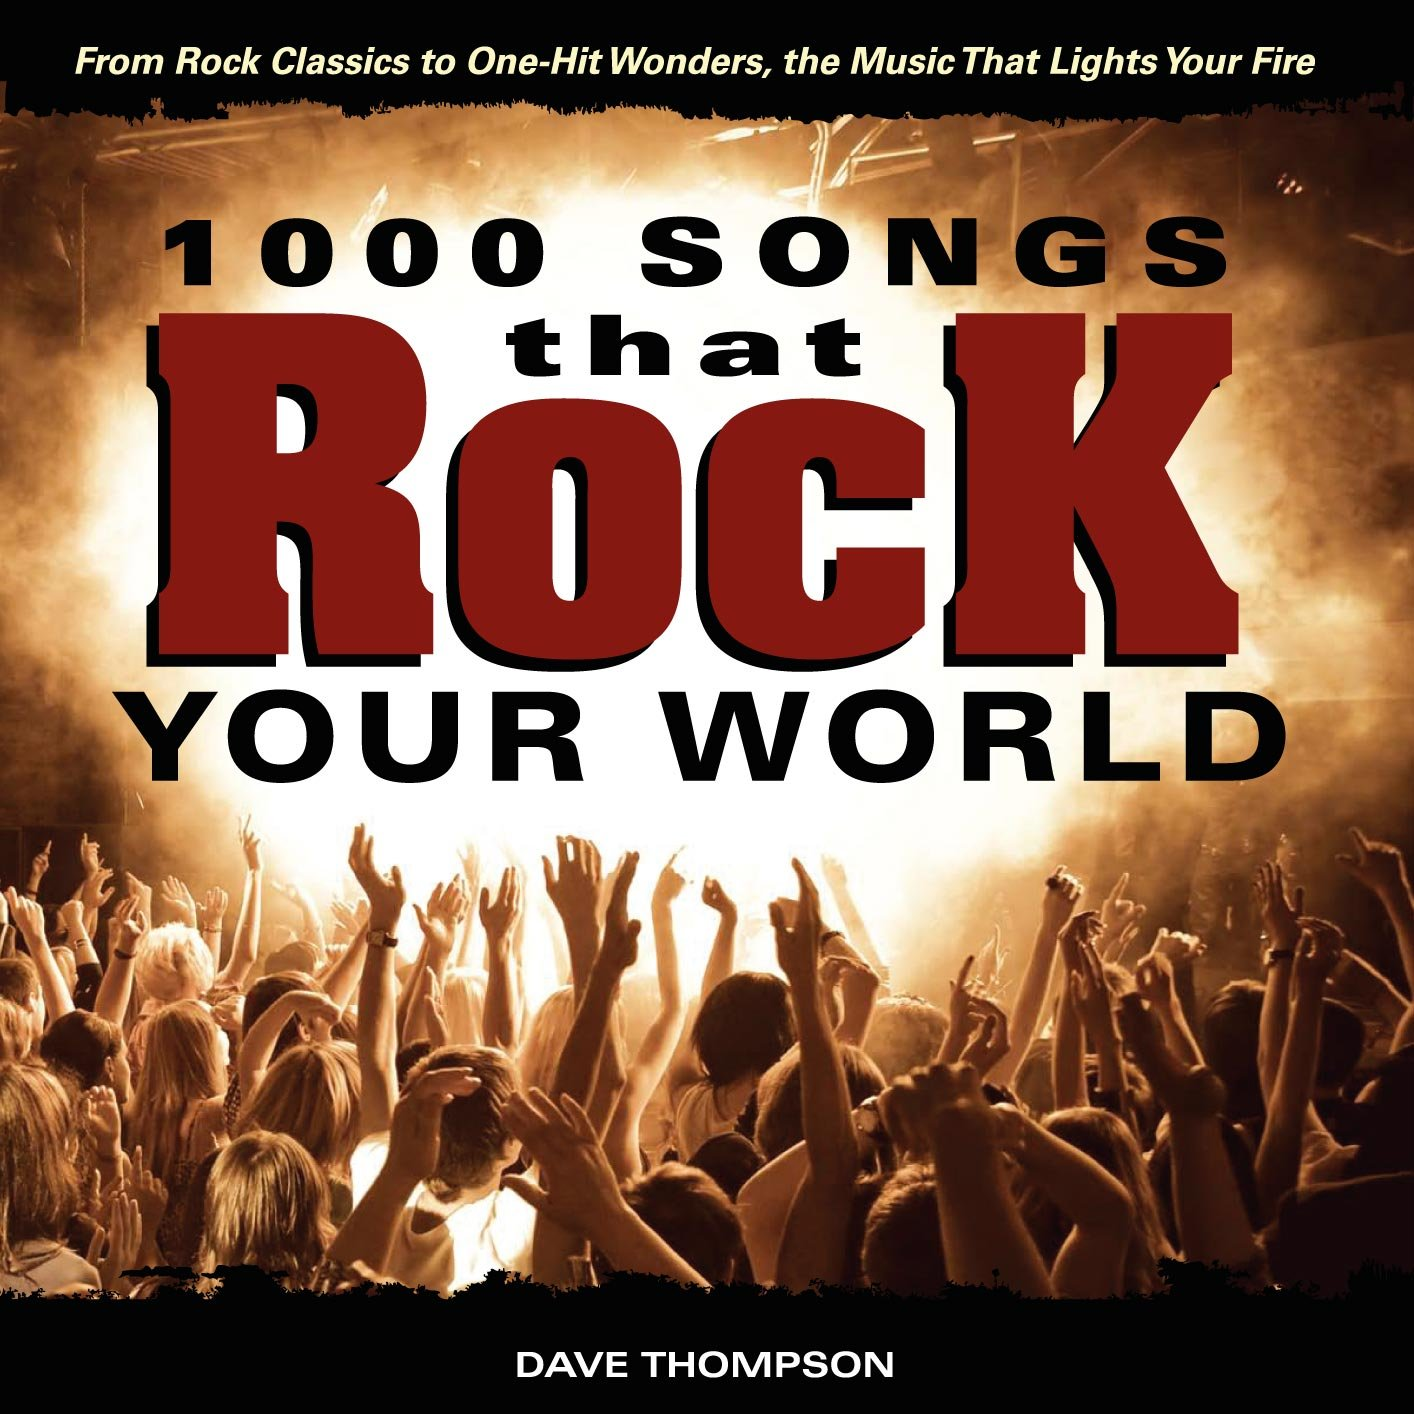 1000 Songs that Rock Your World: From Rock Classics to one-Hit Wonders, the  Music That Lights Your Fire: Dave Thompson: 9781440214226: Amazon.com: Books